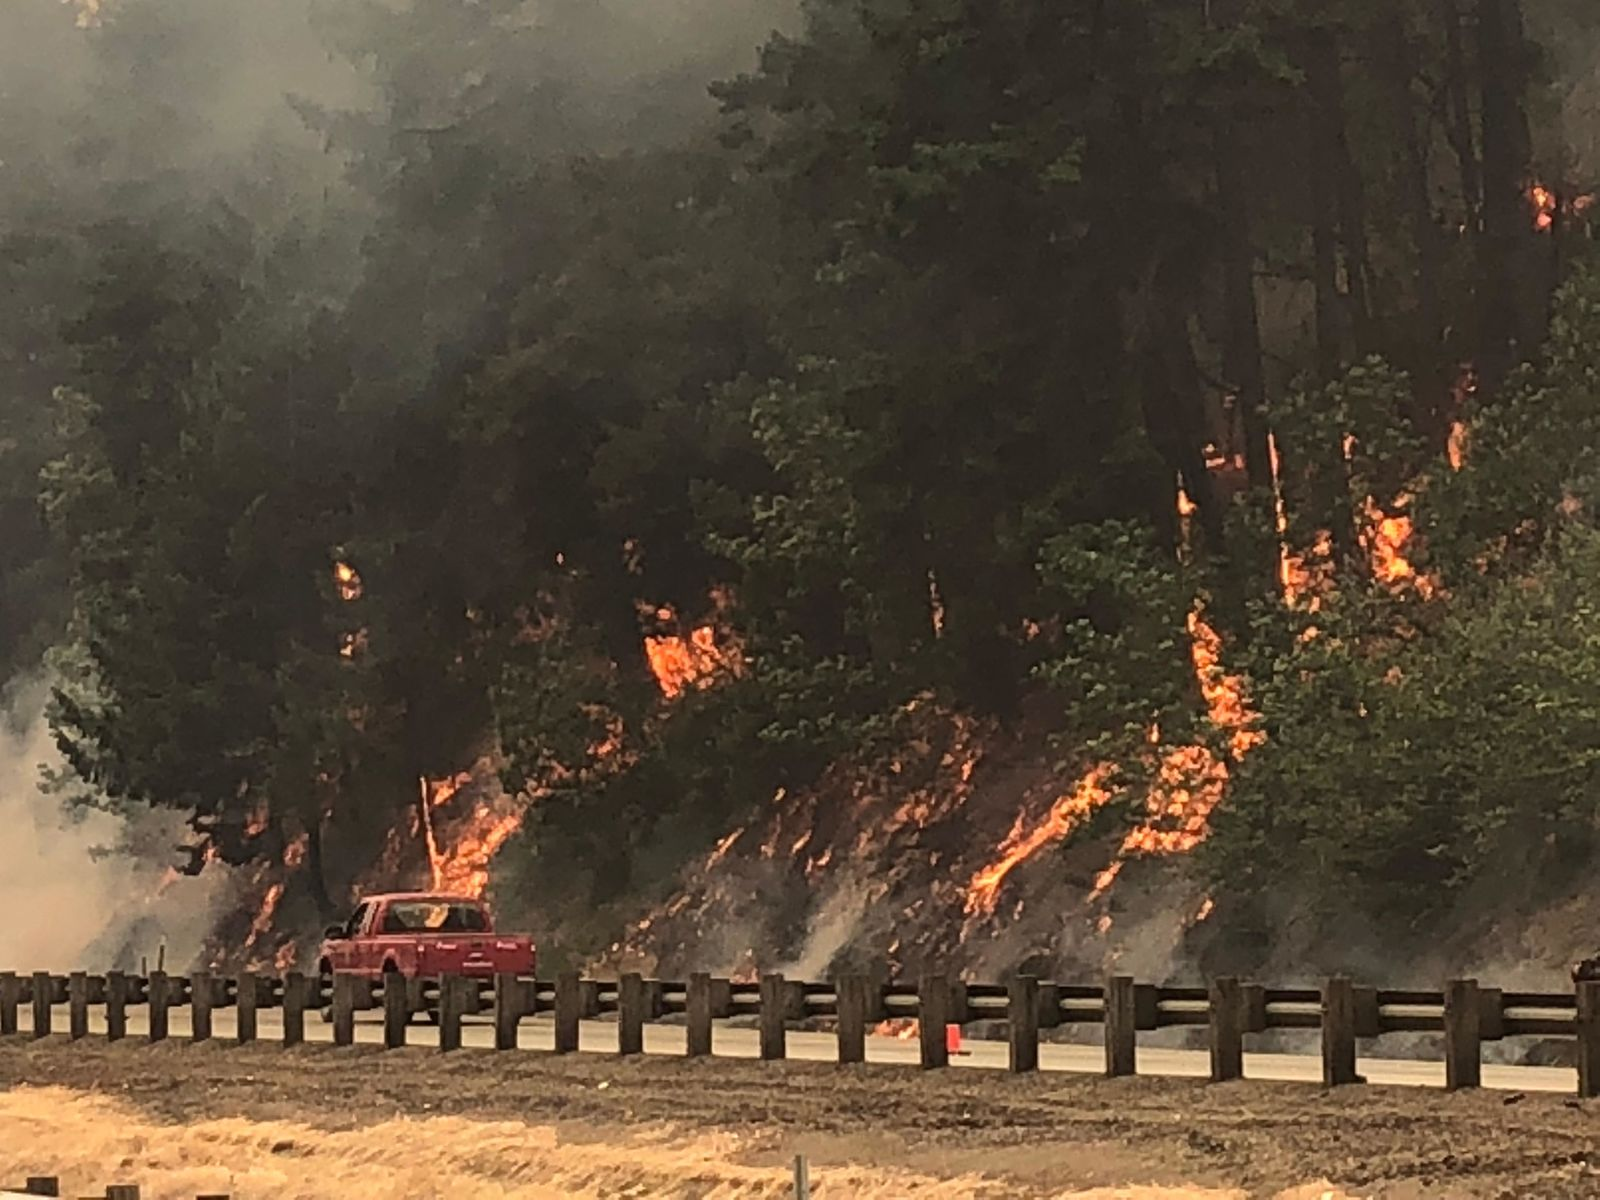 The Milepost 97 Fire burns along Interstate 5 in Oregon. (ODOT/CC by 2.0)